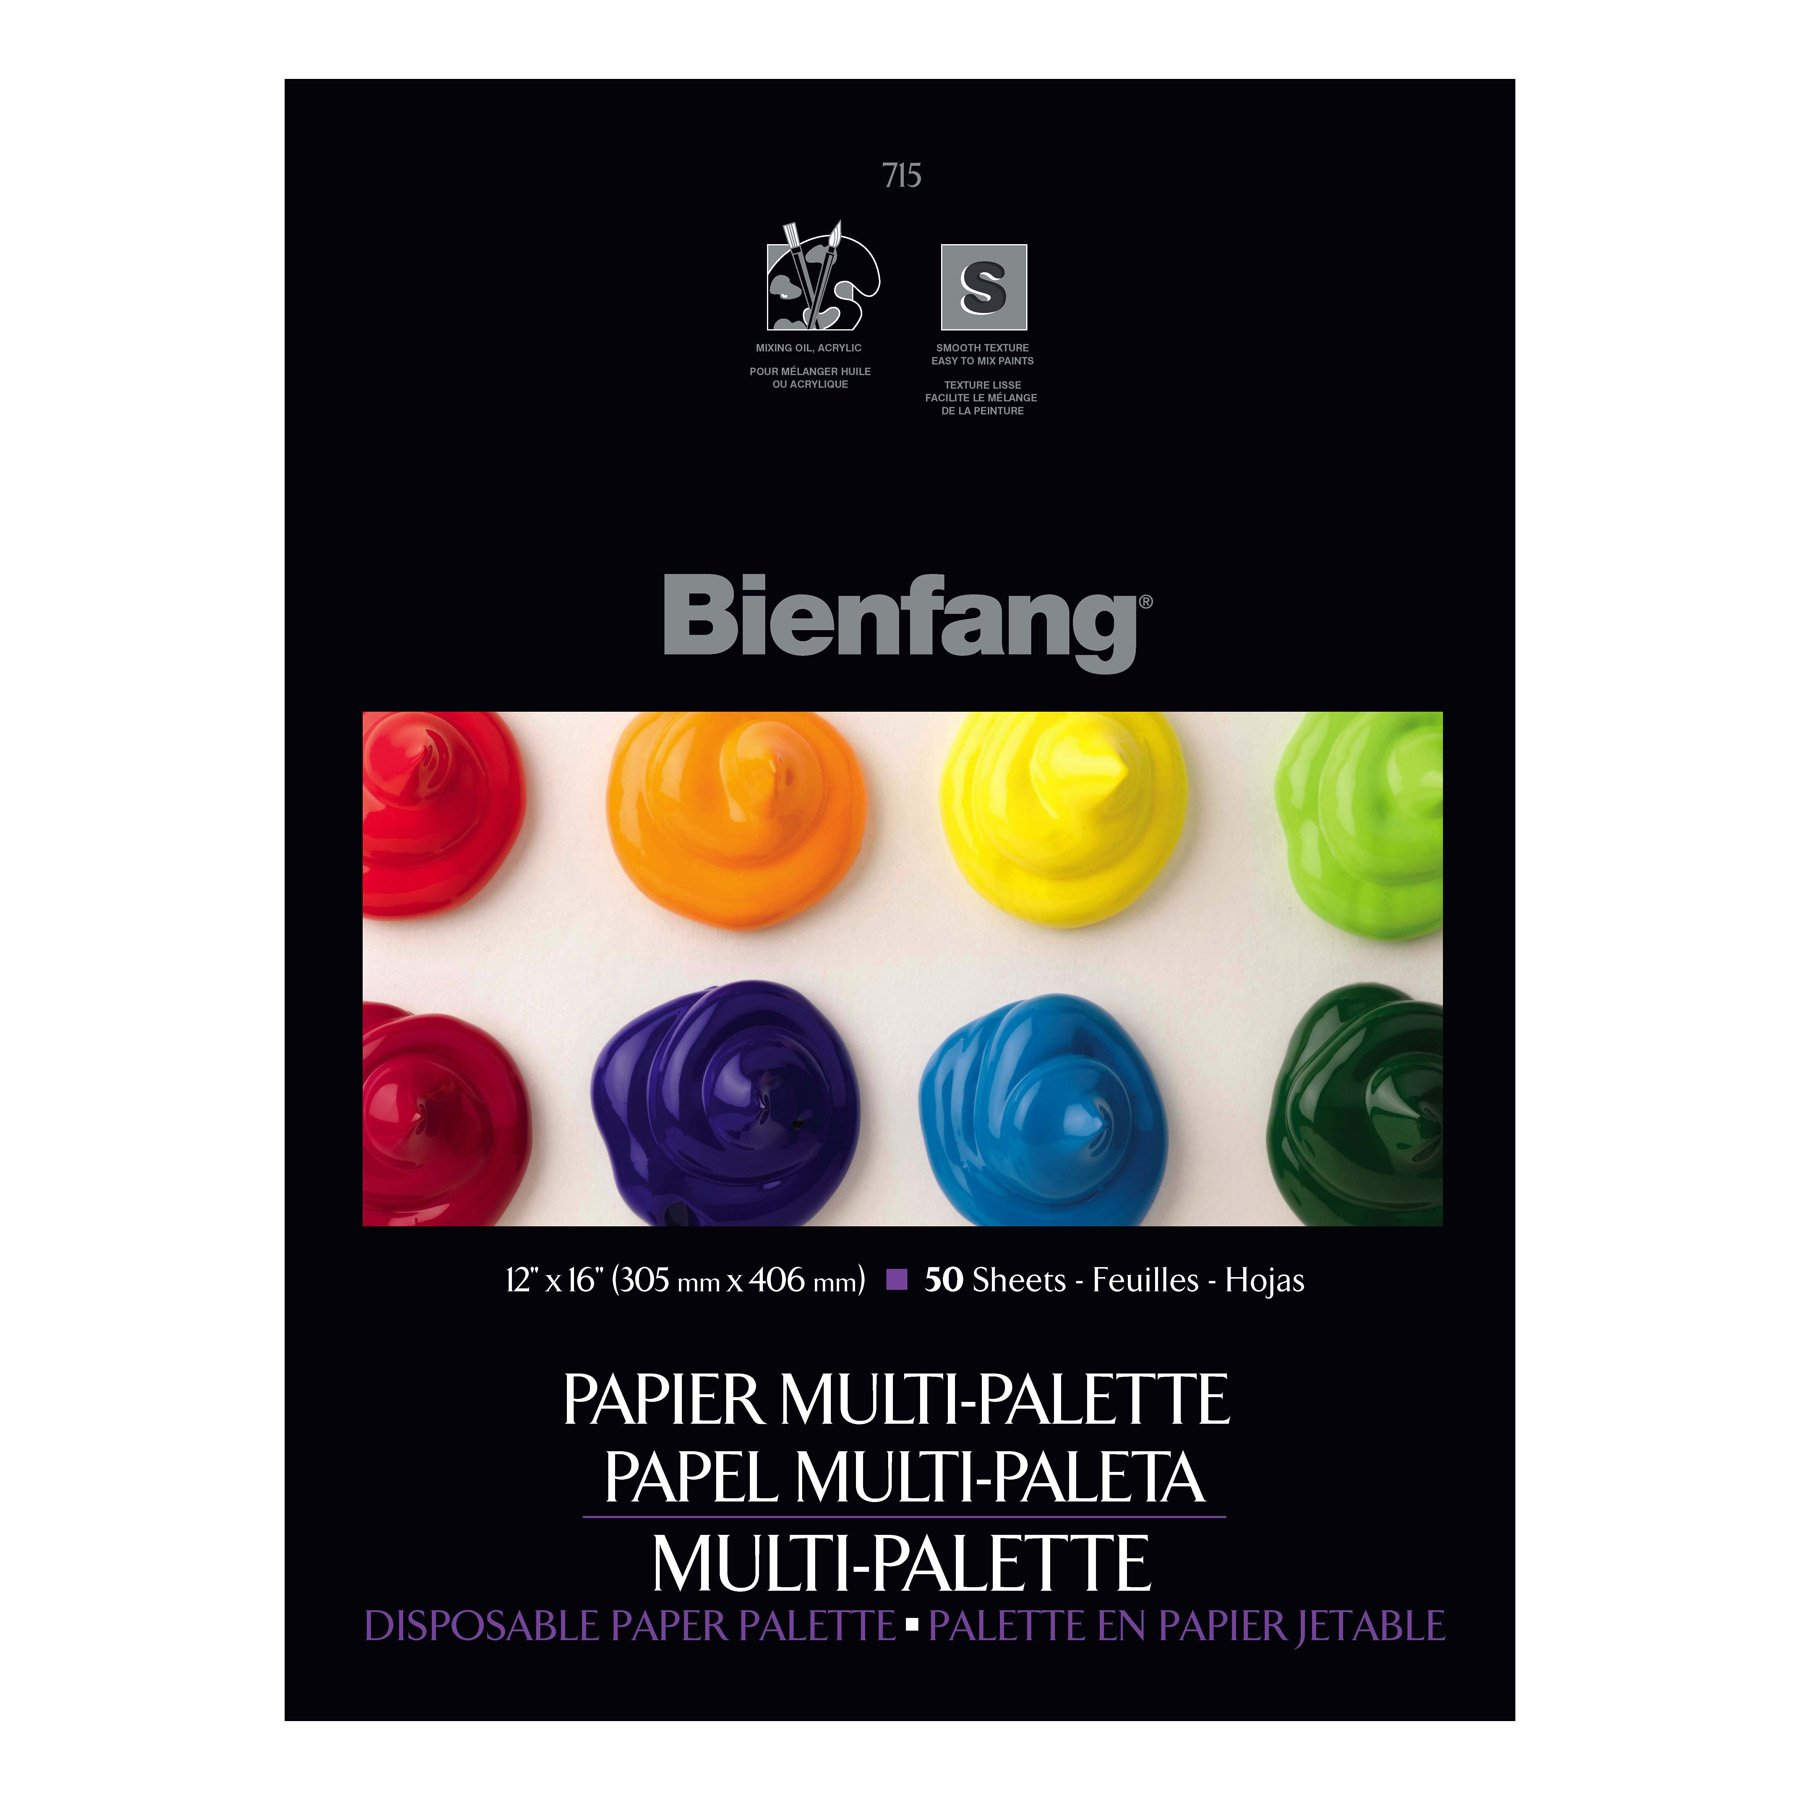 Bienfang 12 by 16-Inch Multi-Palette Disposable Palette, 50 Sheets by Bienfang